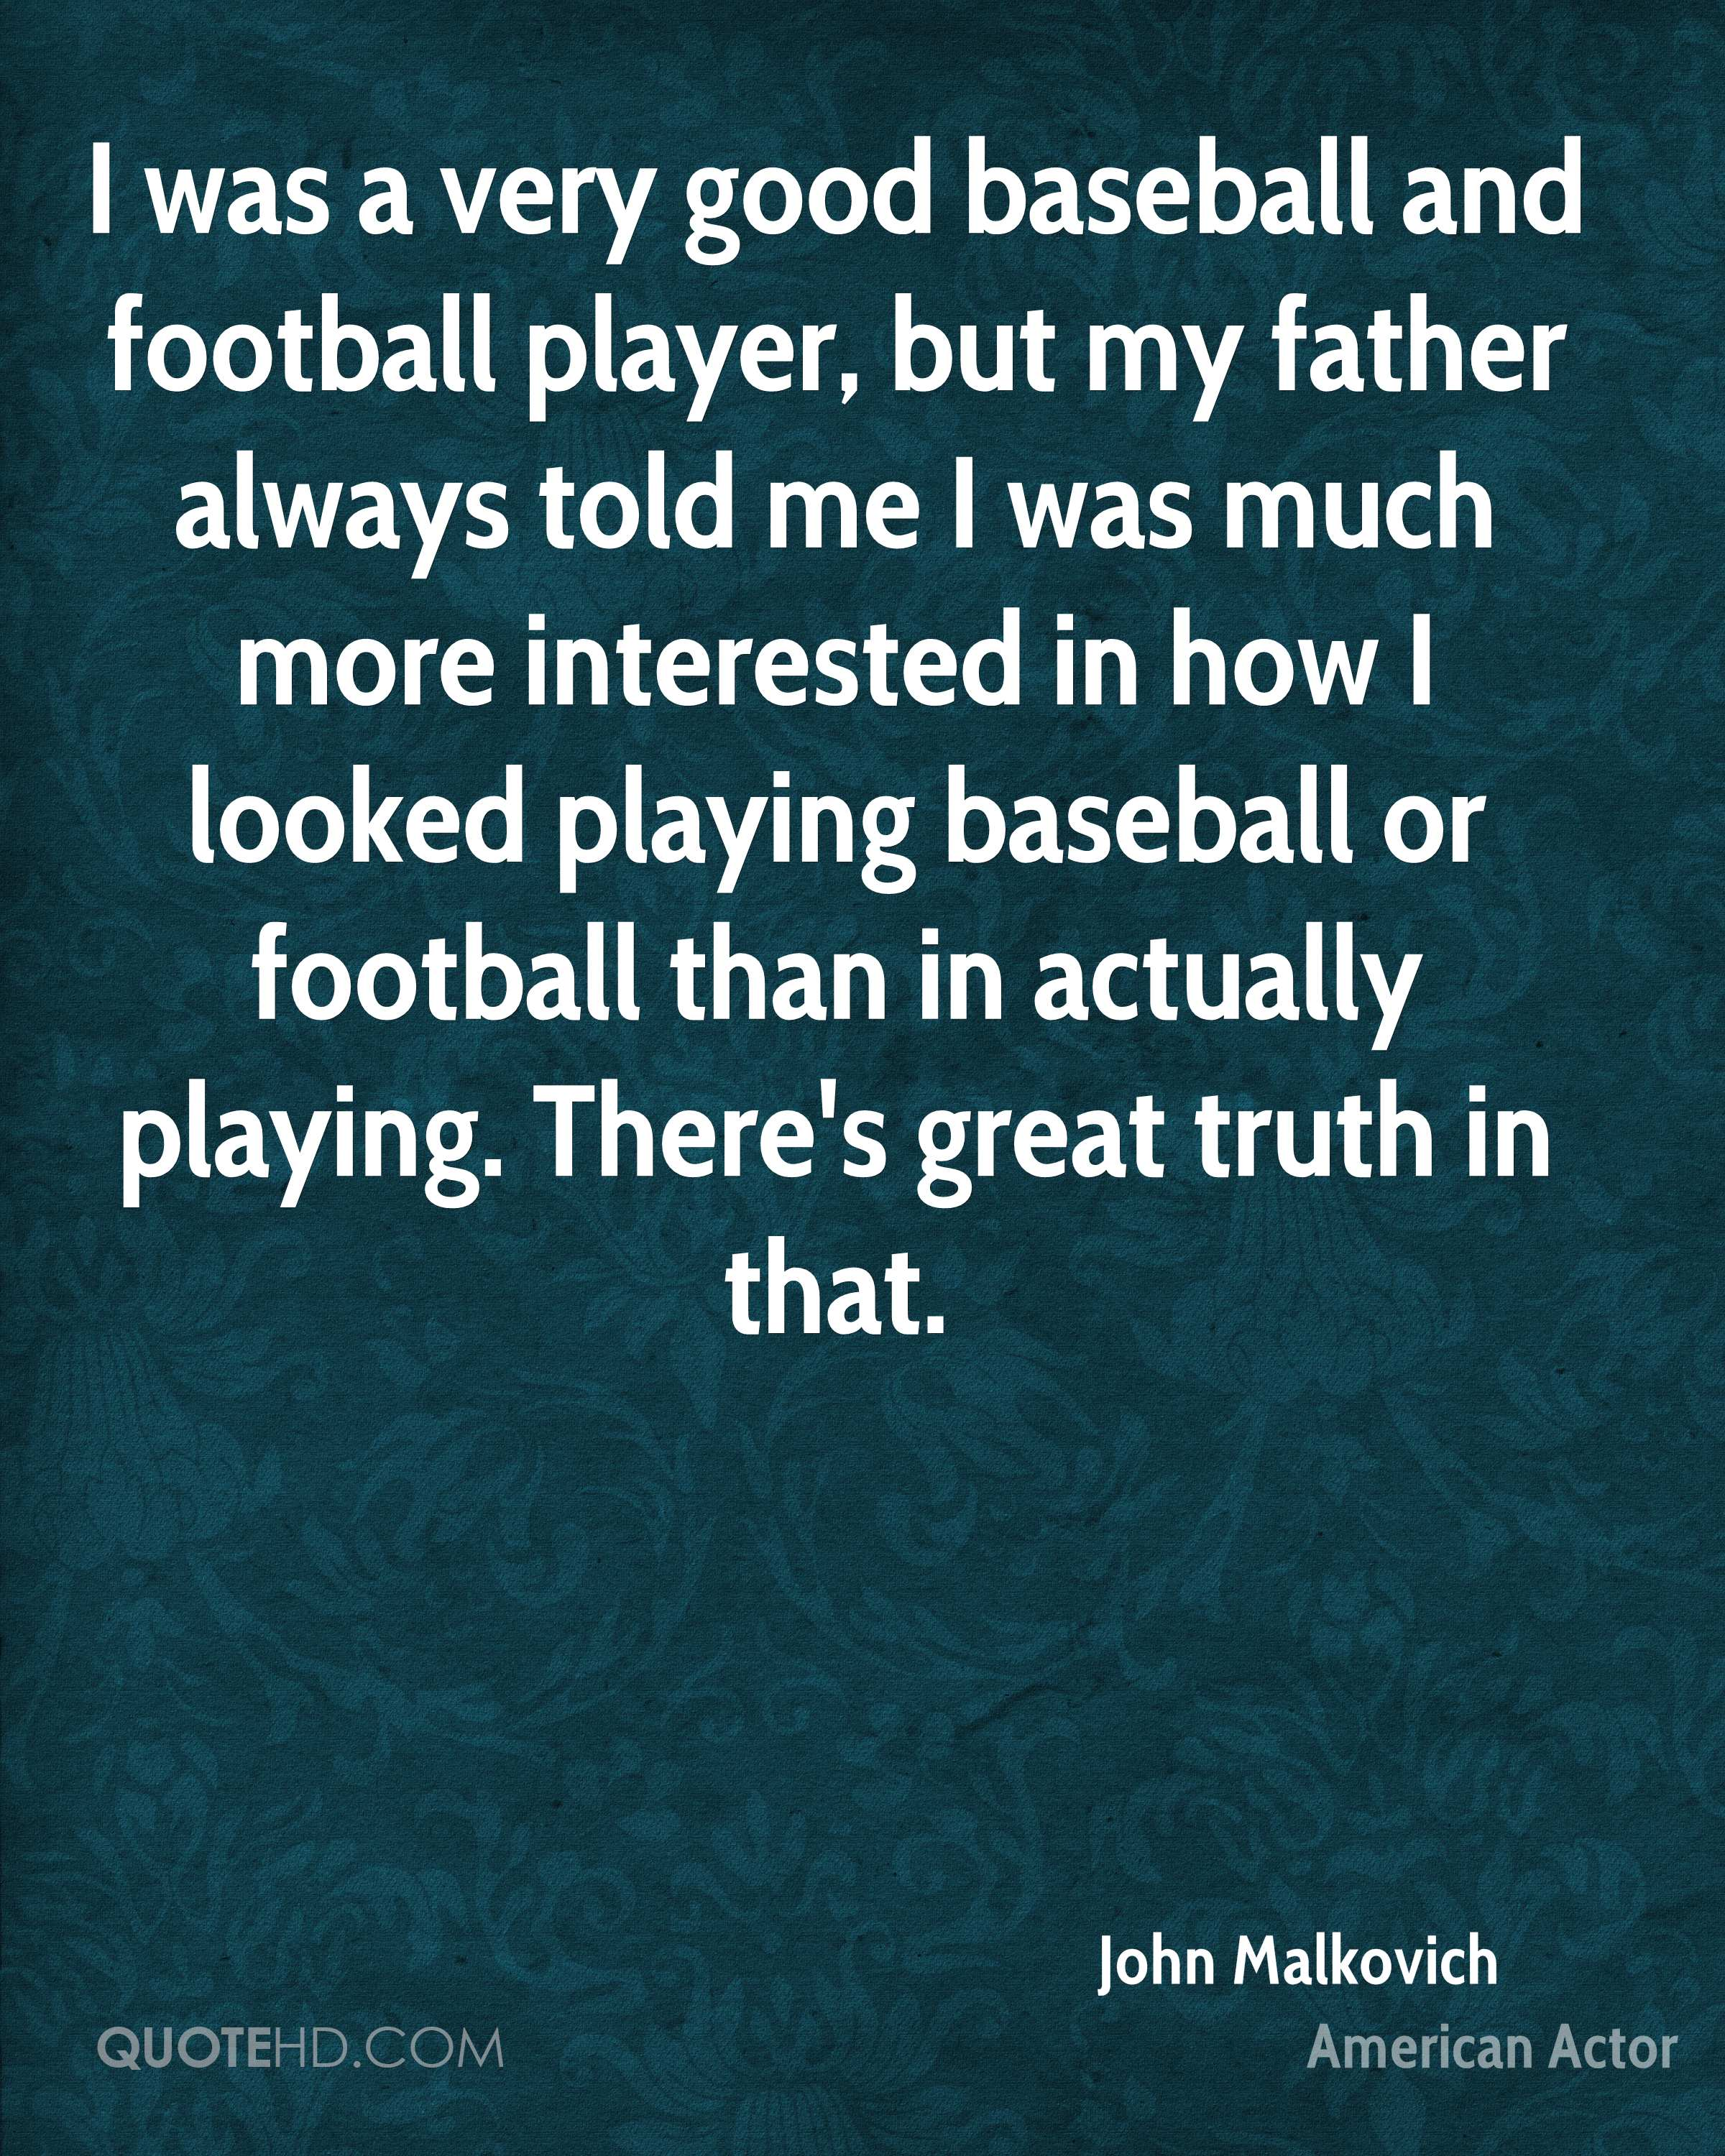 I was a very good baseball and football player, but my father always told me I was much more interested in how I looked playing baseball or football than in actually playing. There's great truth in that.